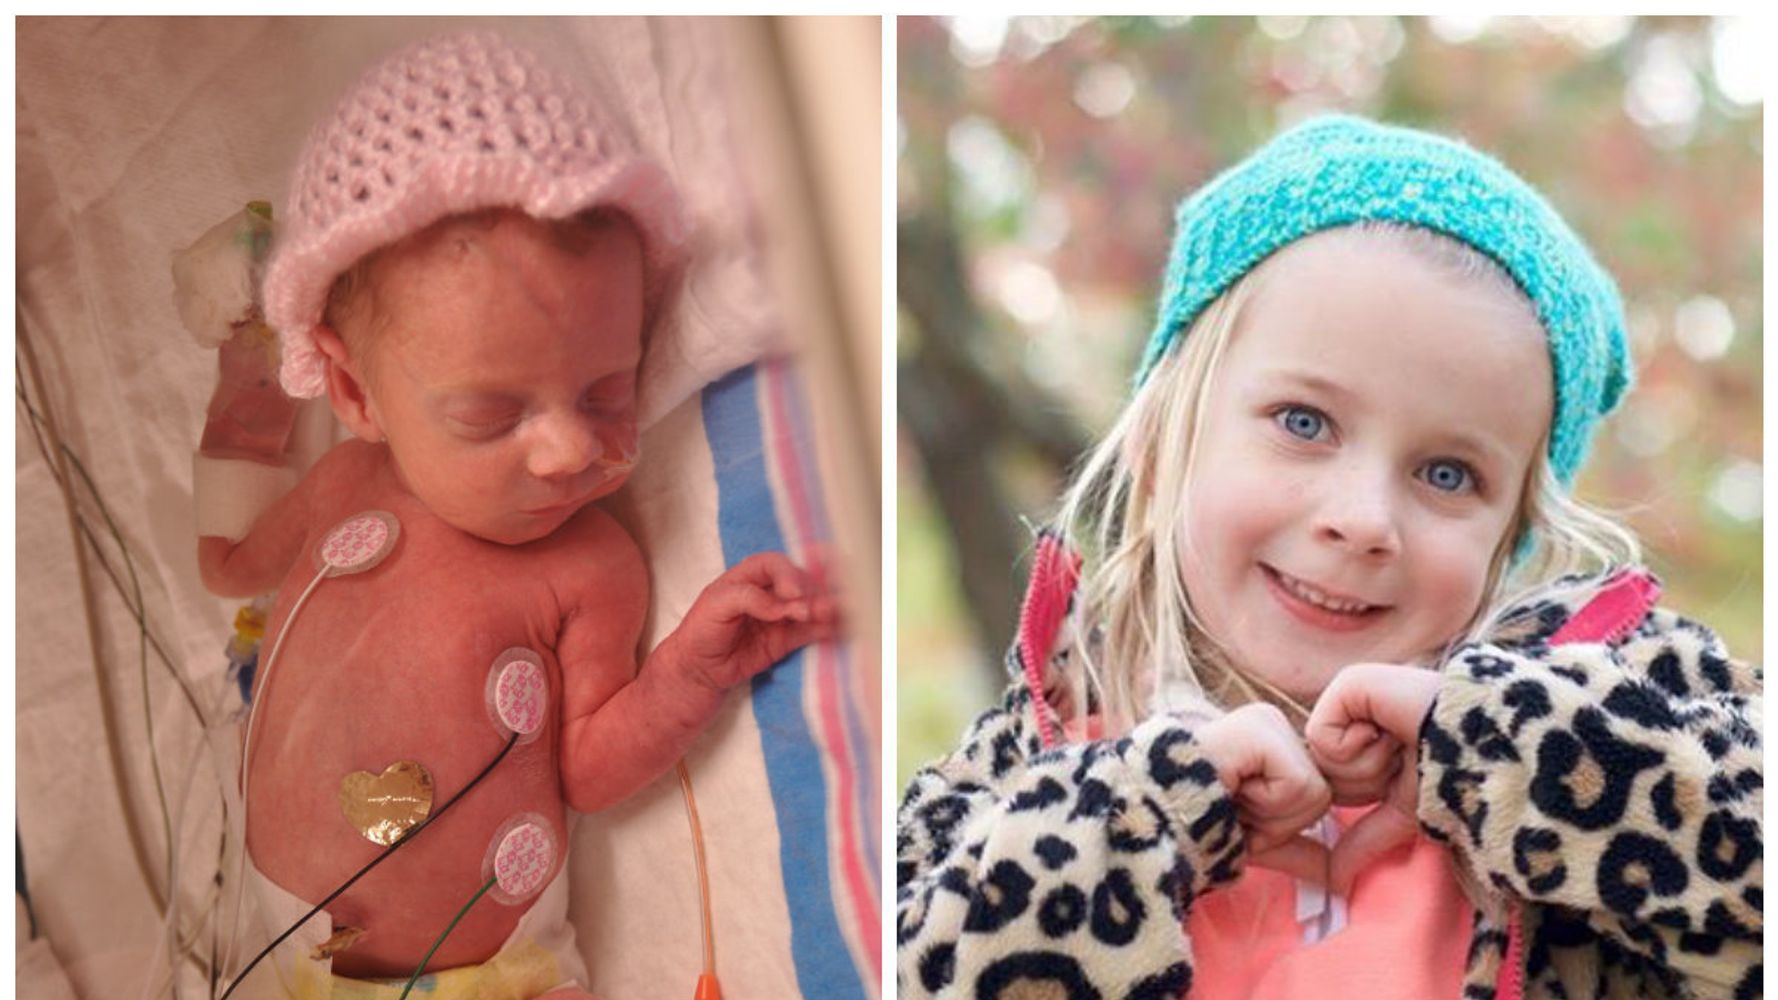 Photos Of Premature Babies Then And Now Show Their